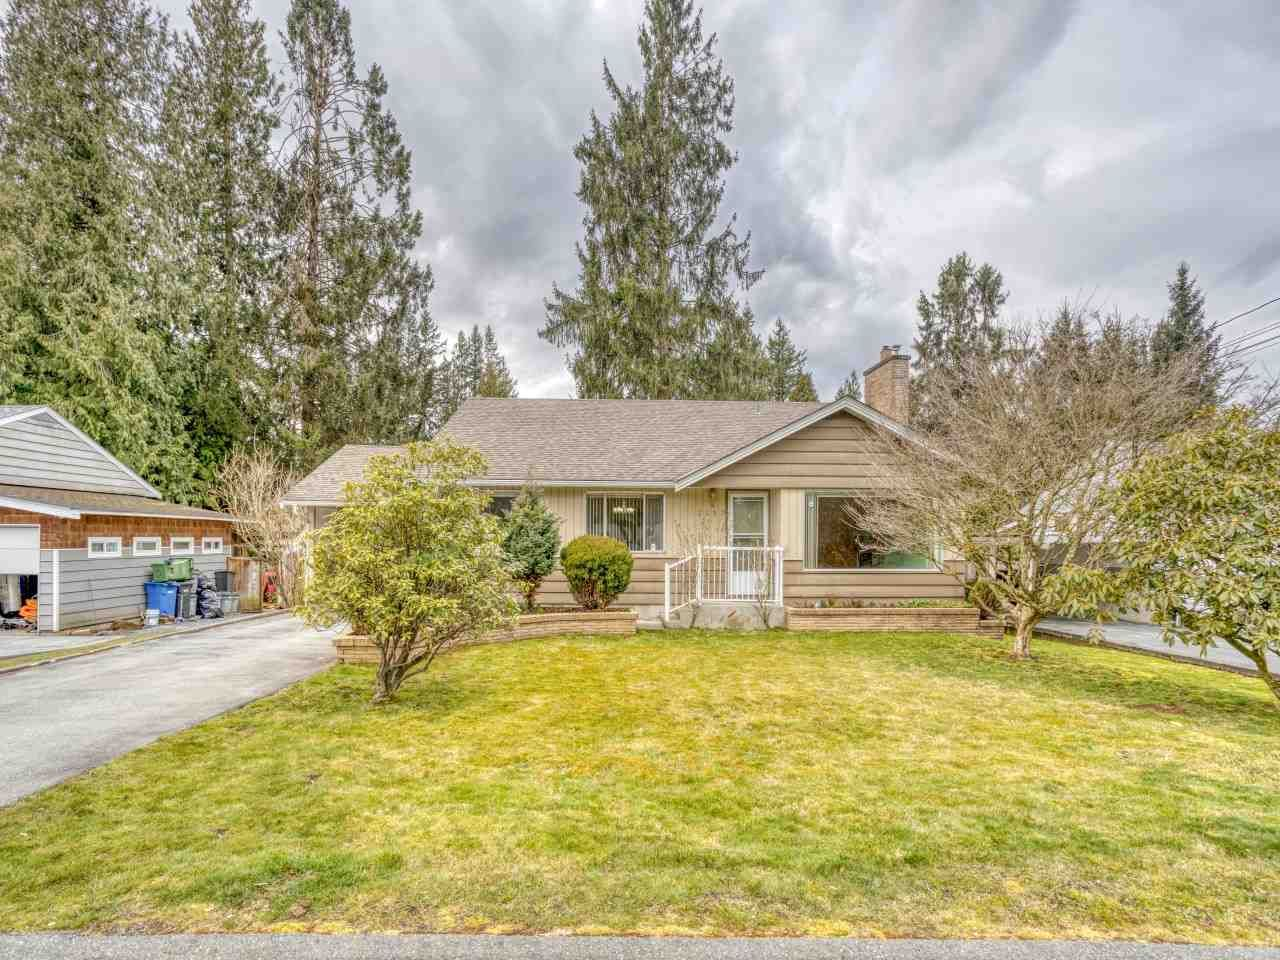 """Main Photo: 2327 CLARKE Drive in Abbotsford: Central Abbotsford House for sale in """"Historic Downtown Infill Area"""" : MLS®# R2556801"""